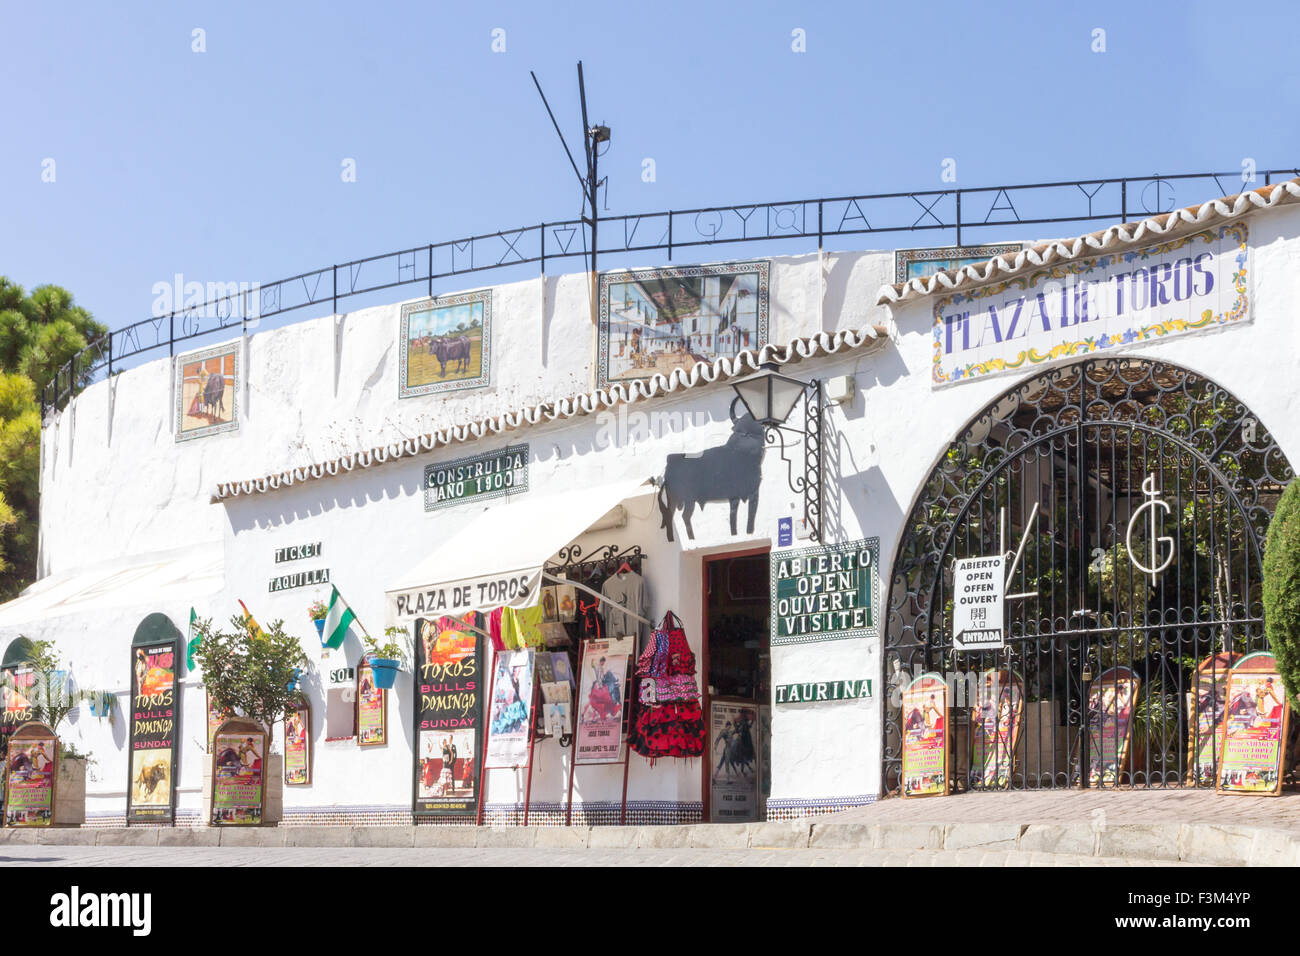 Exterior of bullring, Mijas, Andalucia, Spainentrance - Stock Image